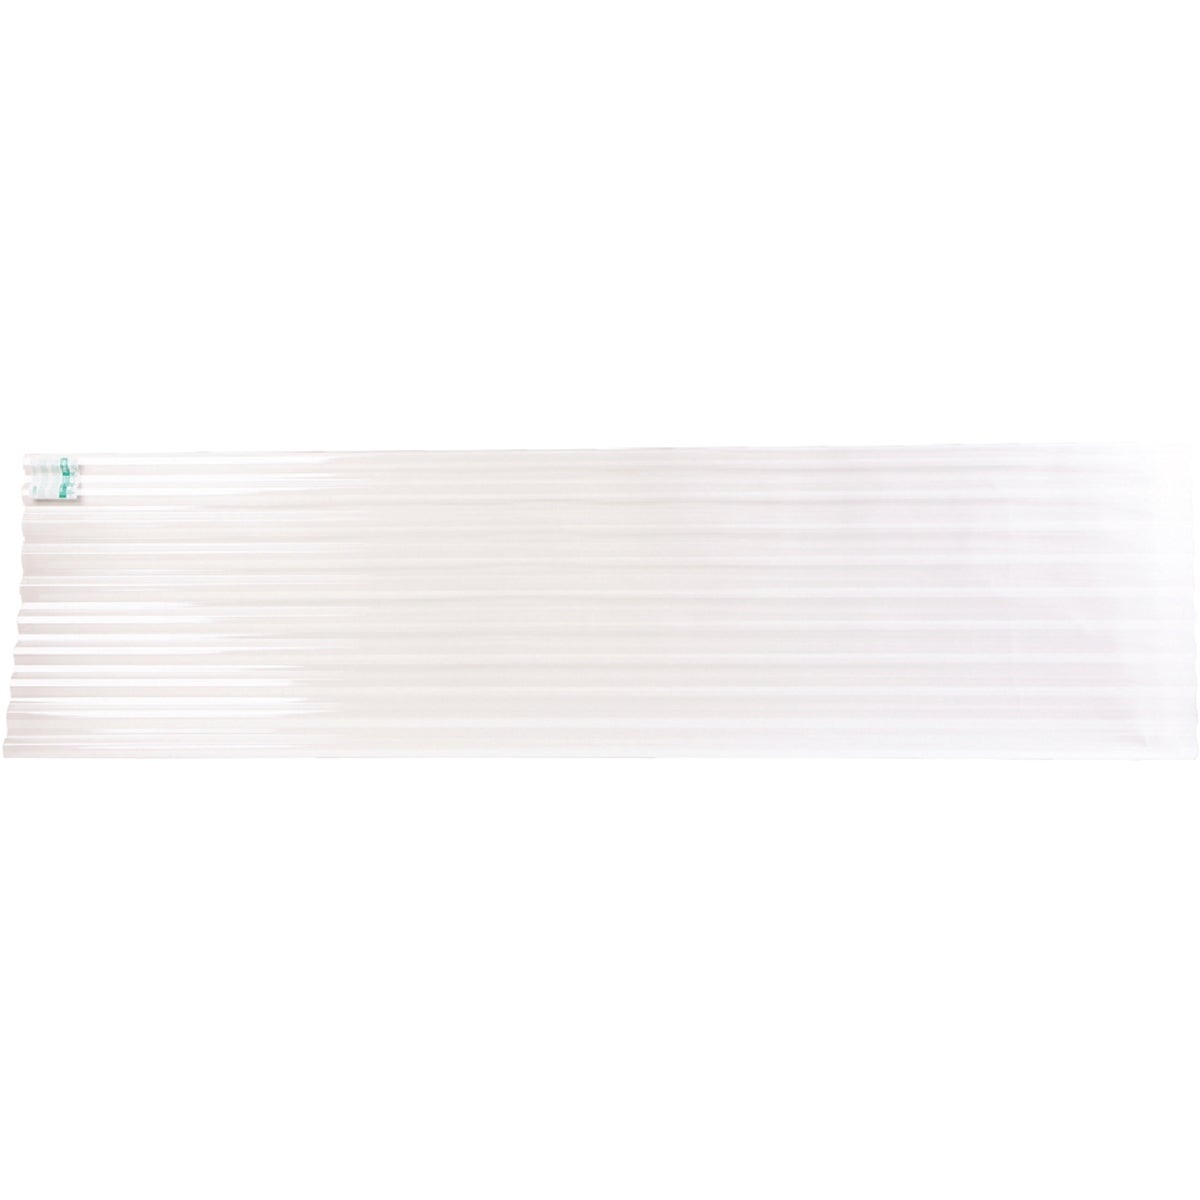 12' CLR CORRUGATED PANEL - 141837 by Ofic North America